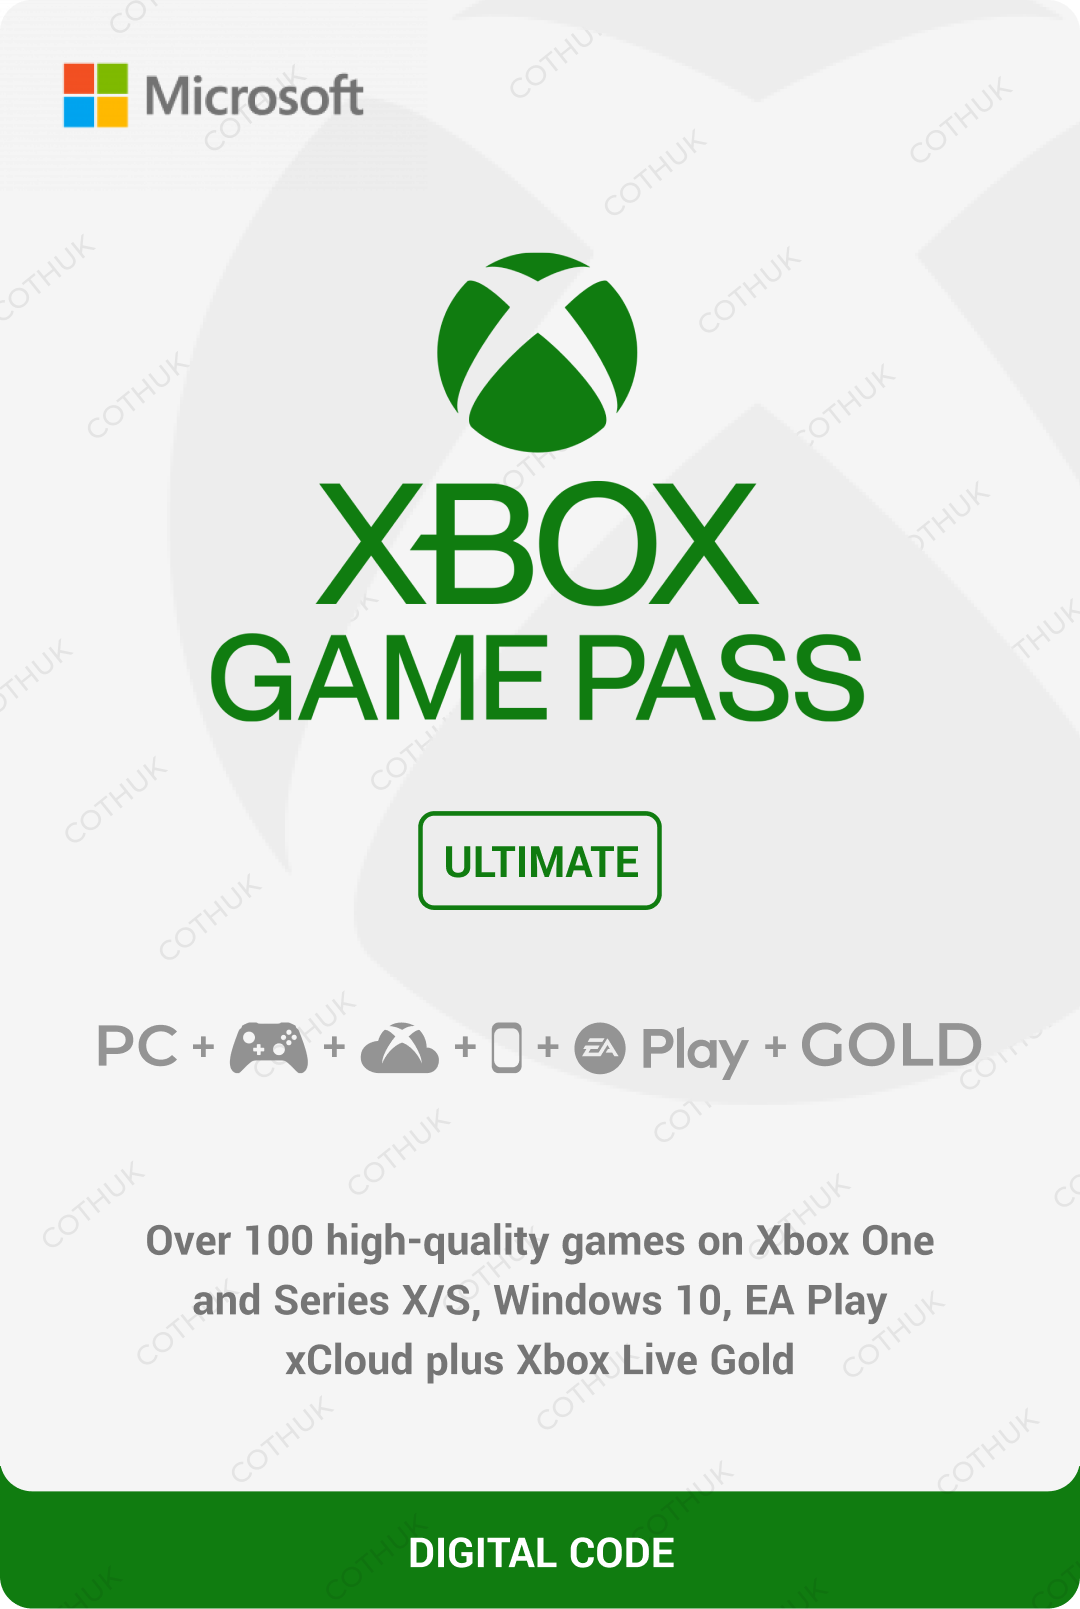 XBOX GAME PASS ULTIMATE на 14 дней+ EA Play + 1 Месяц